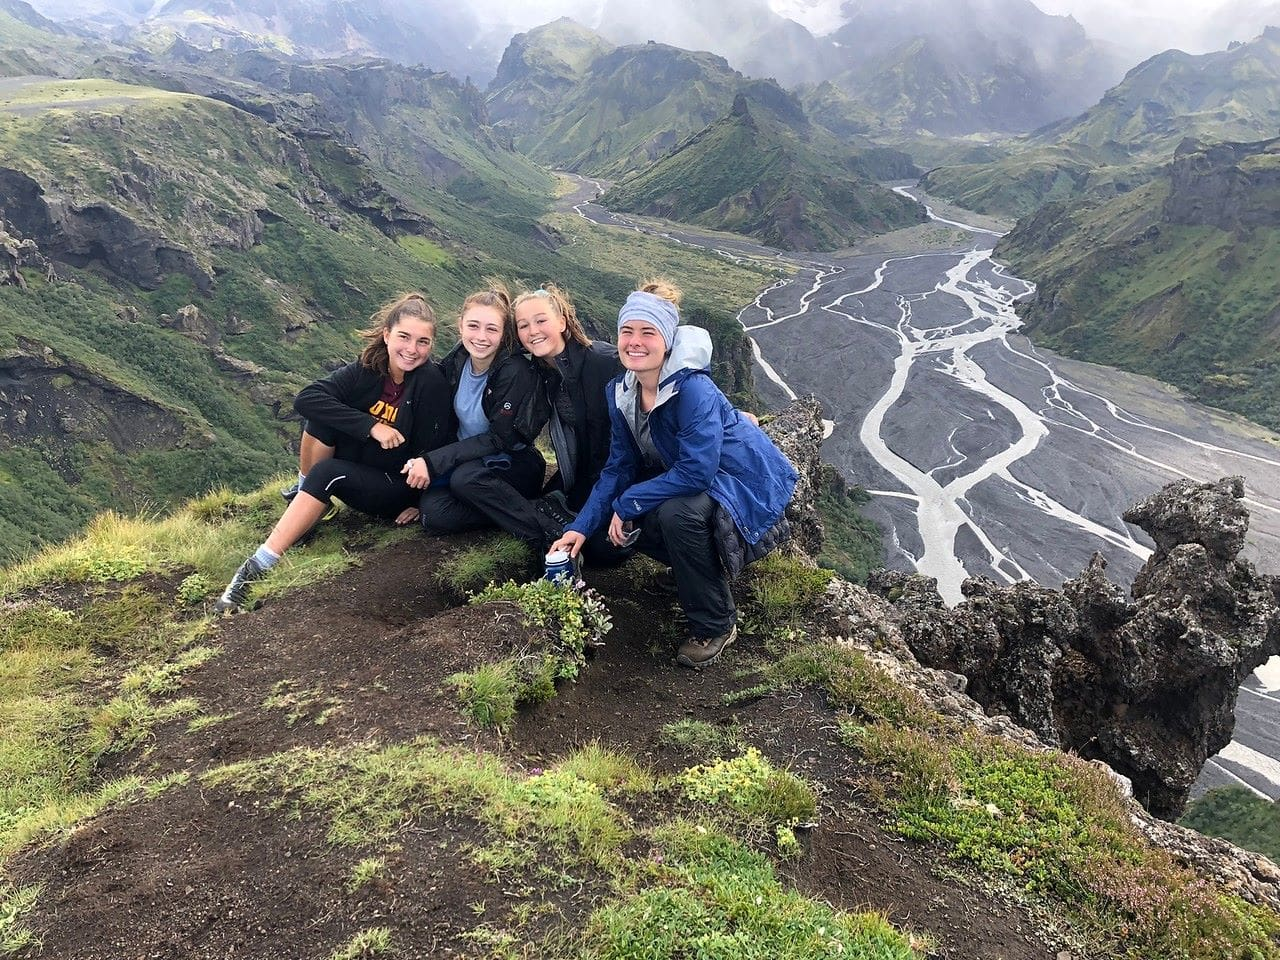 Pausing for a photo opportunity is what our campers do best on their teen adventure program in Iceland this Summer